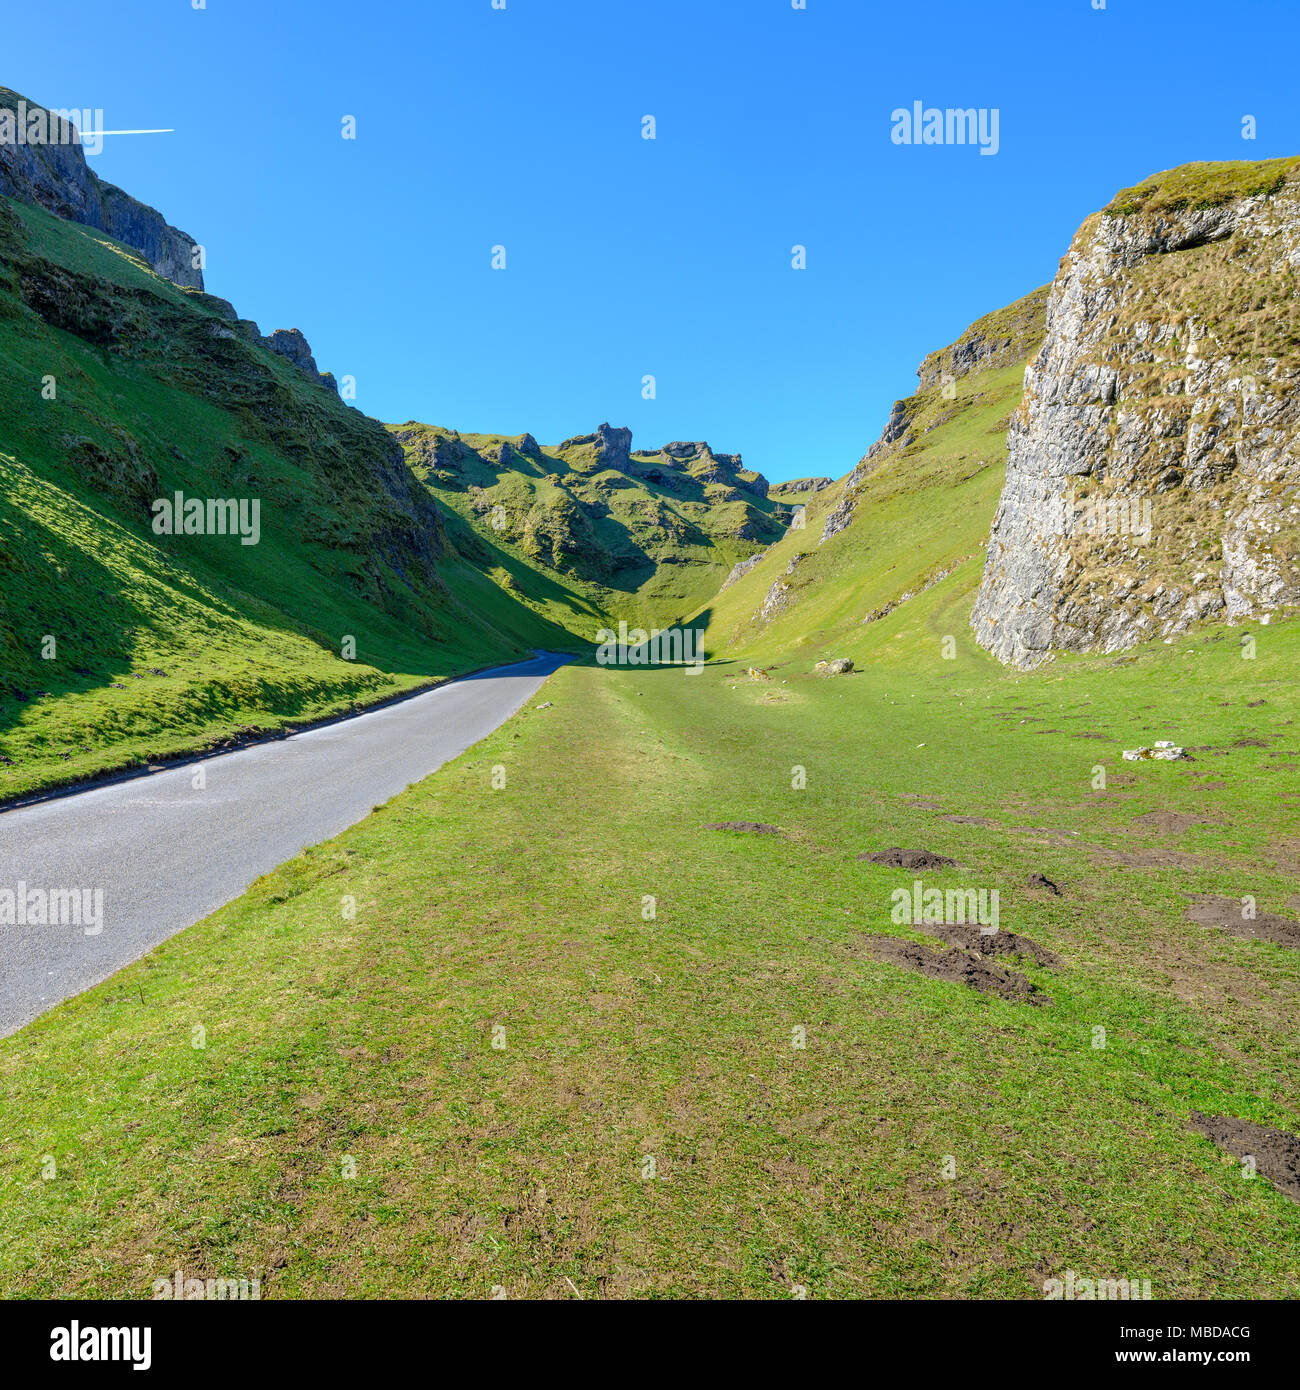 Winnats Pass, near Castleton, on a sunny clear blue sky day without people or cars, Peak District, Derbyshire, UK - Stock Image